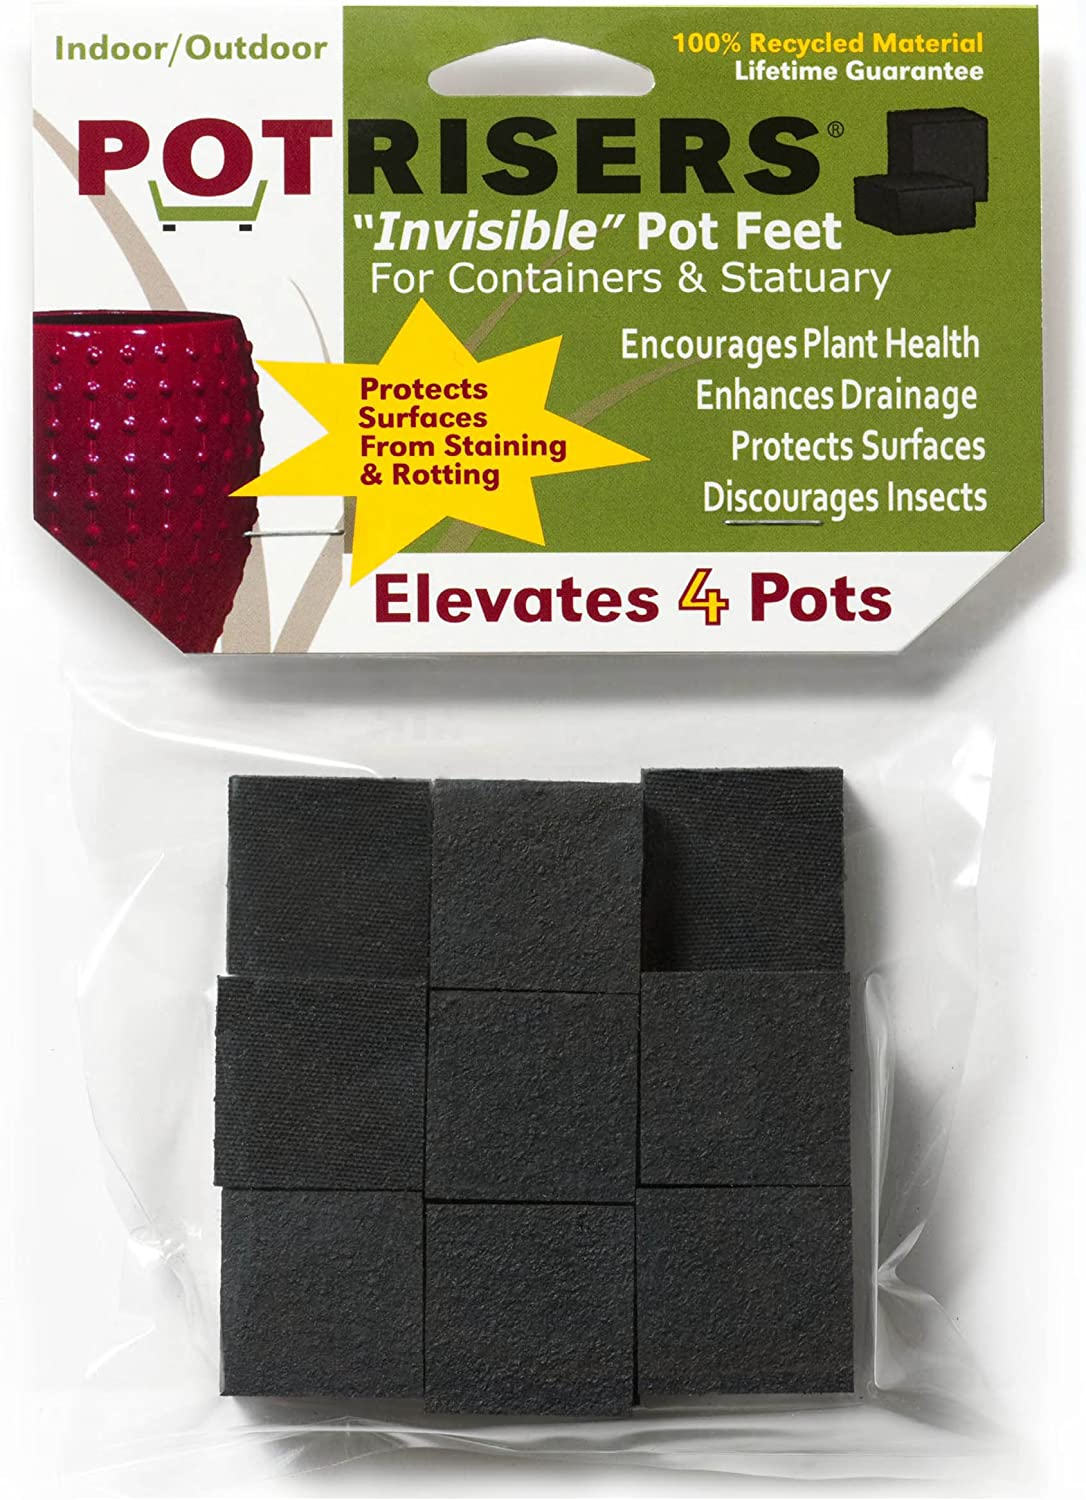 Potrisers 16 Pack of Standard Risers supports 4-5 smaller to medium pots or statuary